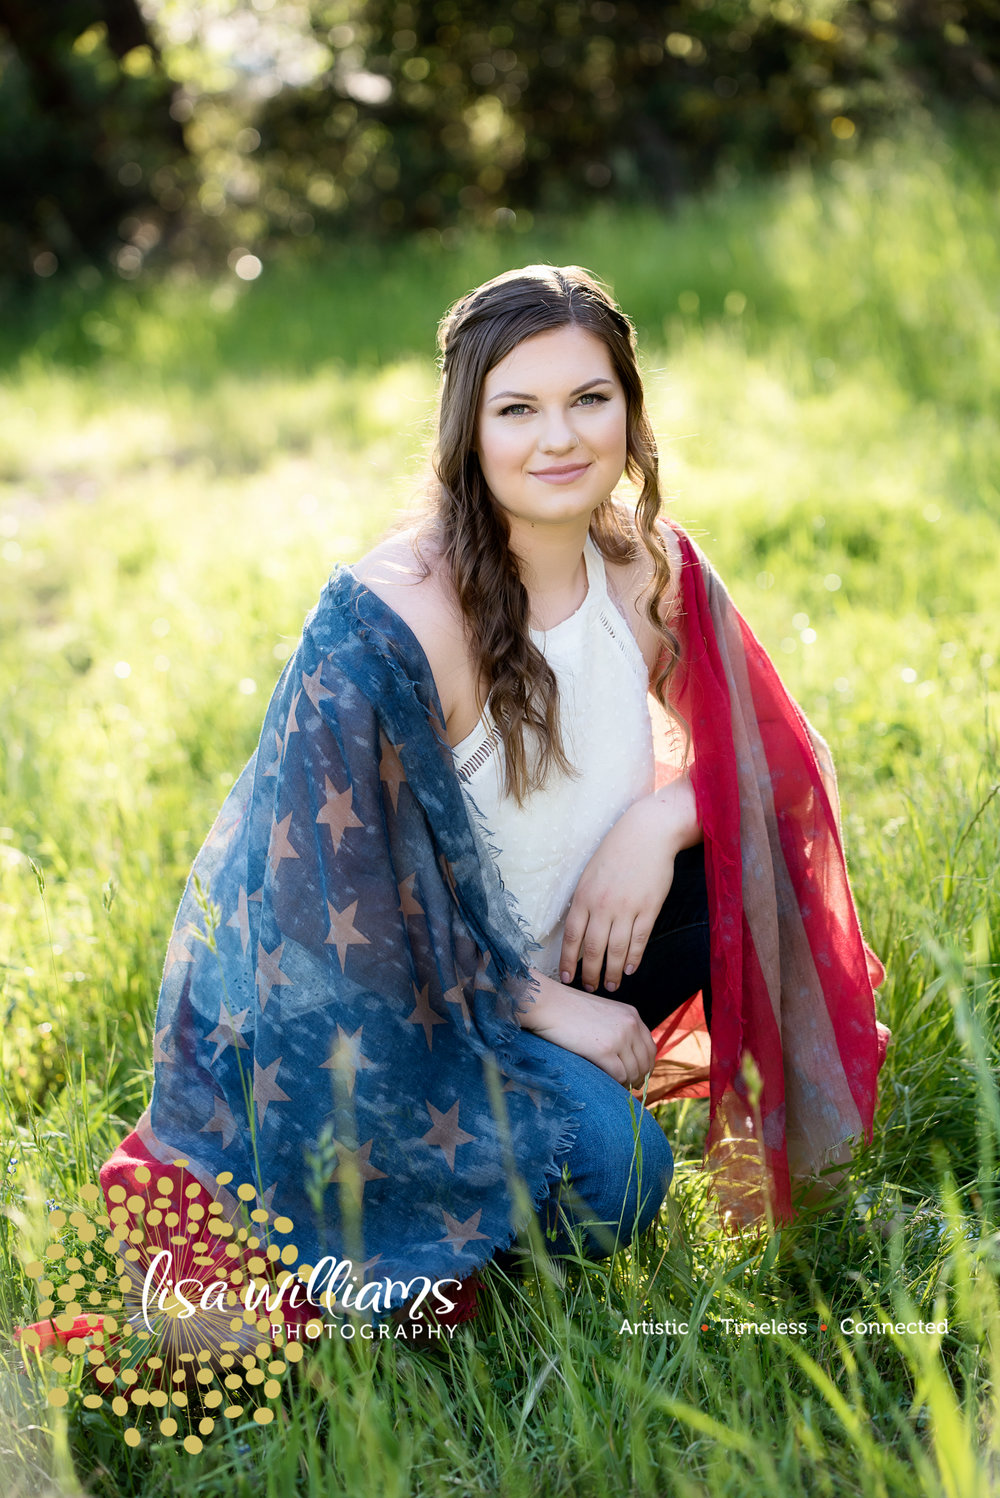 Lisa Williams photography – grass valley, Ca - Nevada county photographer – Colfax, CA – Rocklin – Roseville - Nevada City – Senior Portrait Photography – Alexa7.jpg